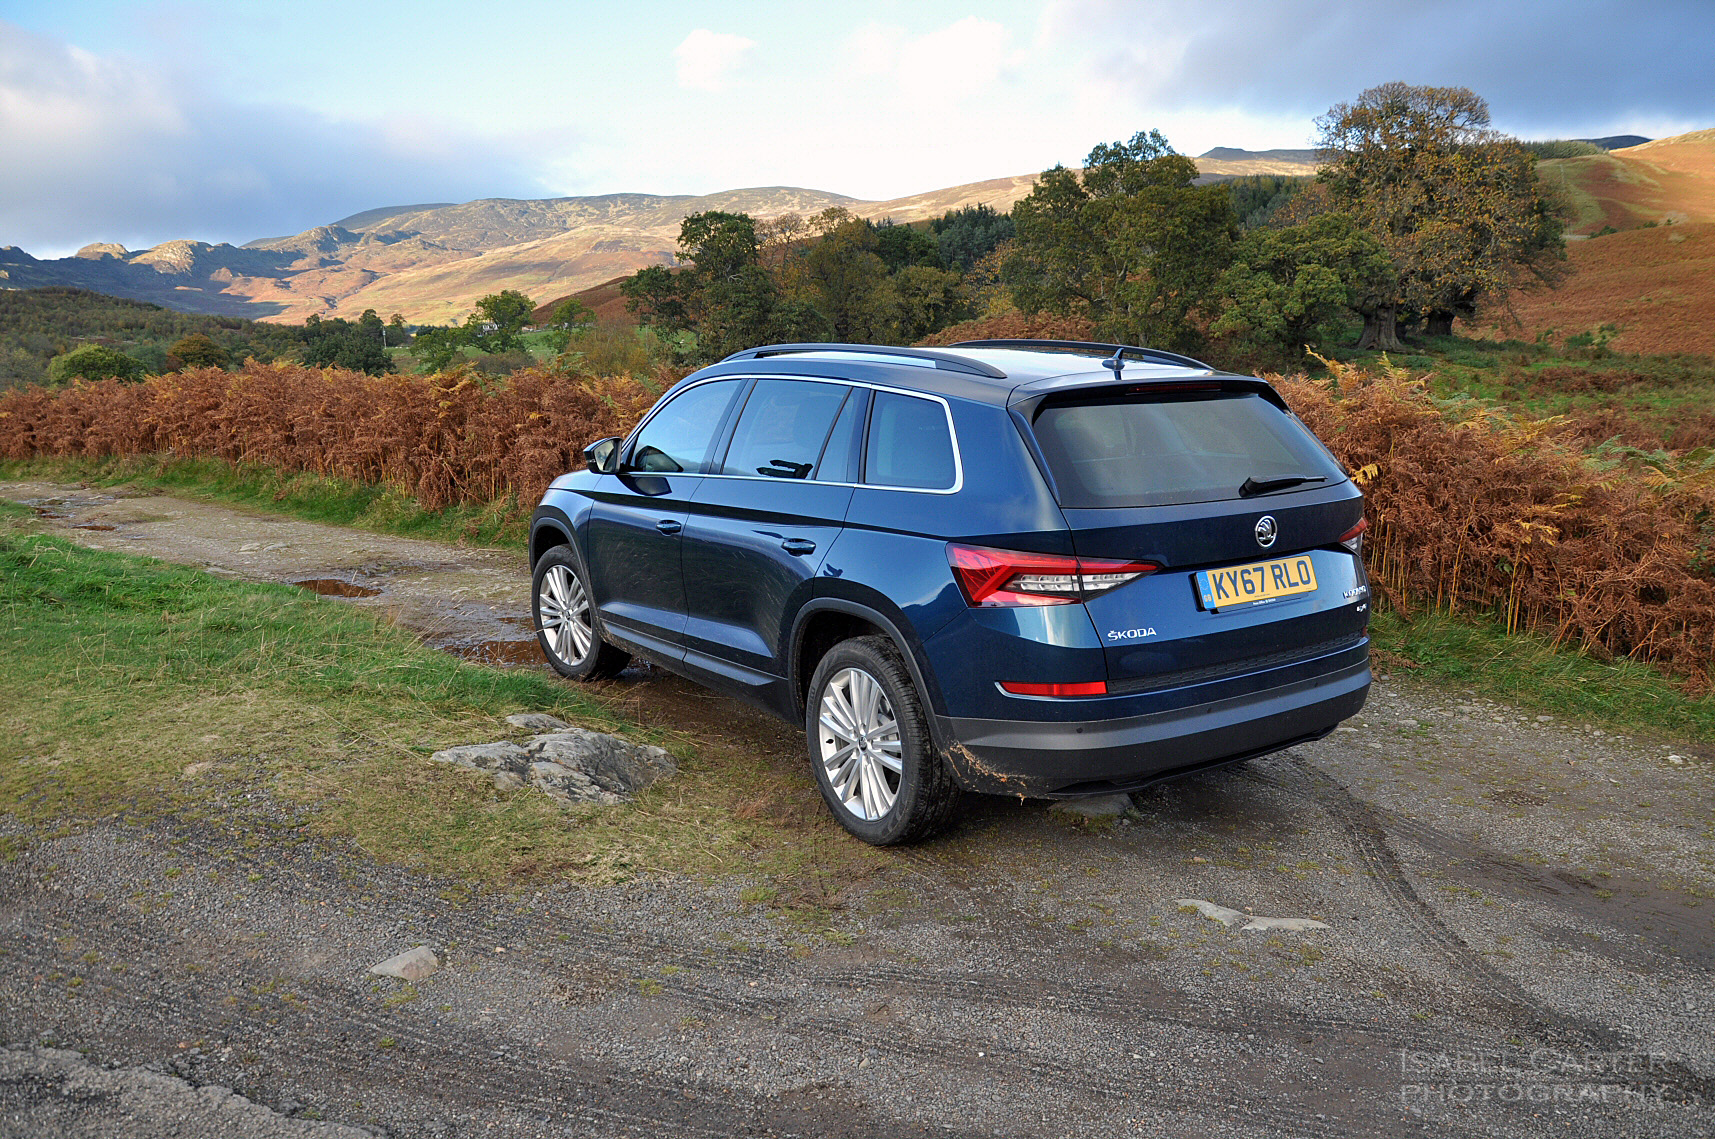 skoda kodiaq 4x4 7 seat suv road test review uk rear off road